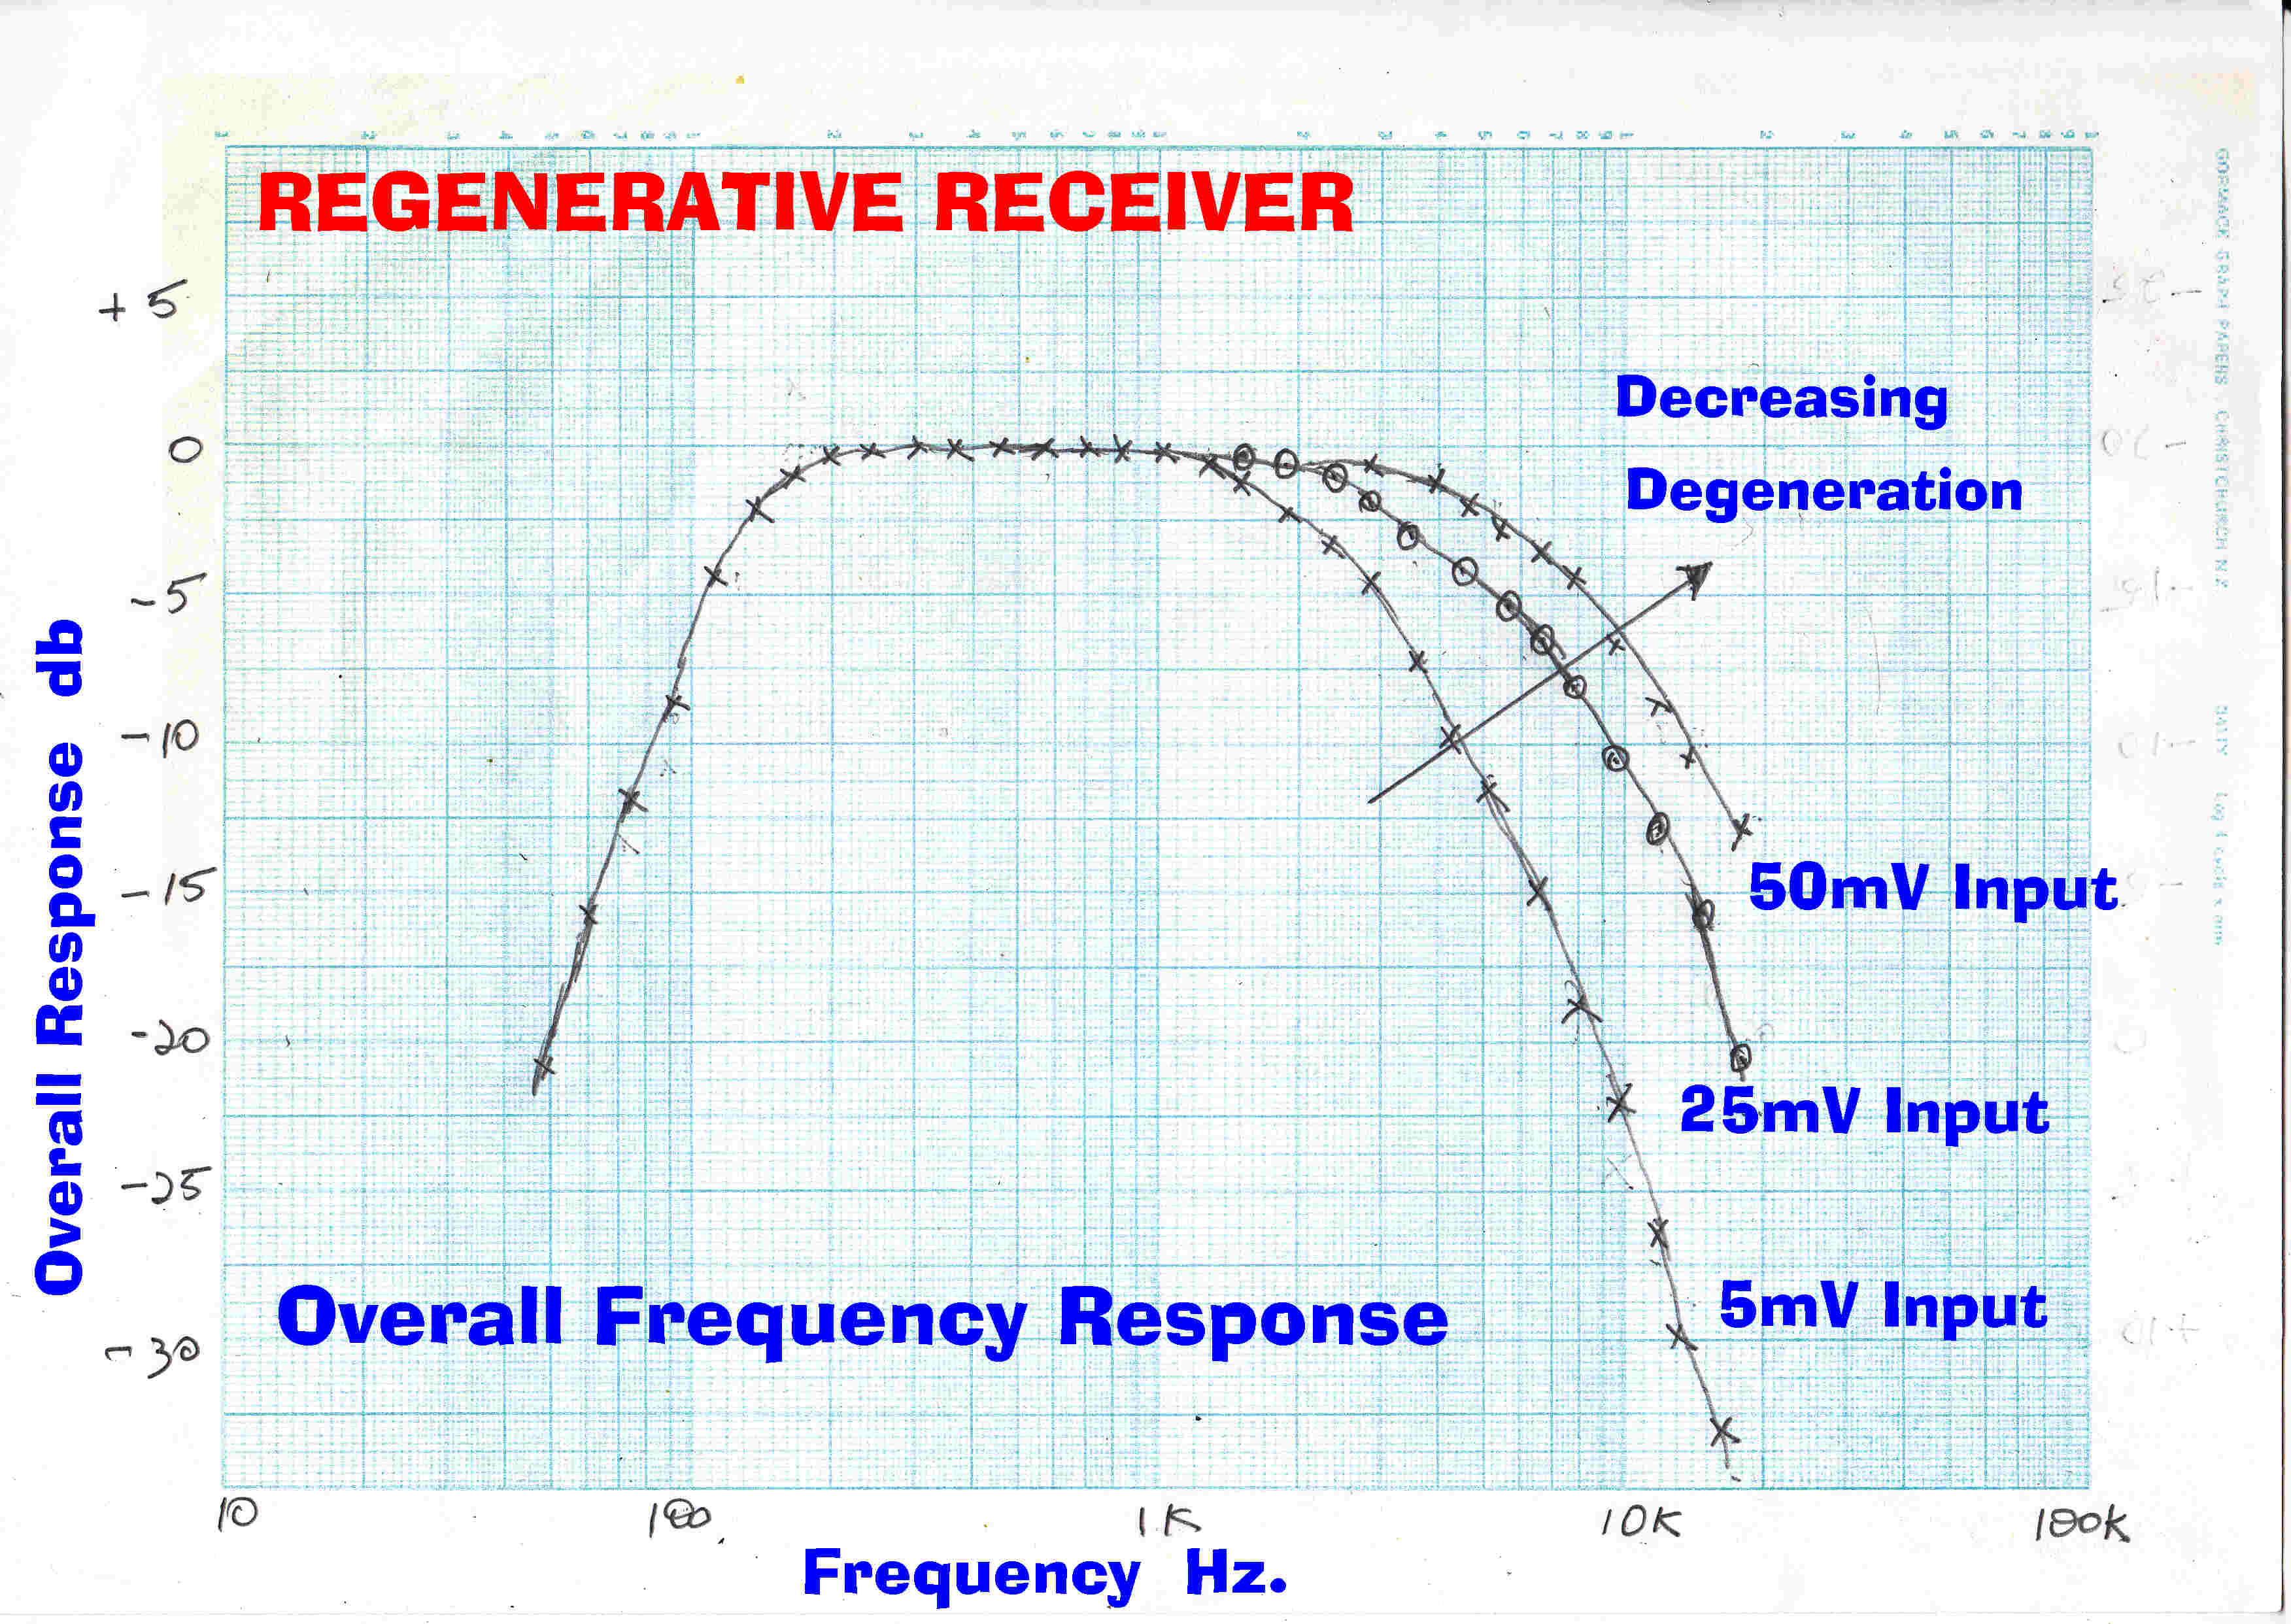 Amplitudemodulation Frequency Response Circuit With No Regeneration The Receiver Bandwidth Is Determined By Loaded Q Of Tuned In